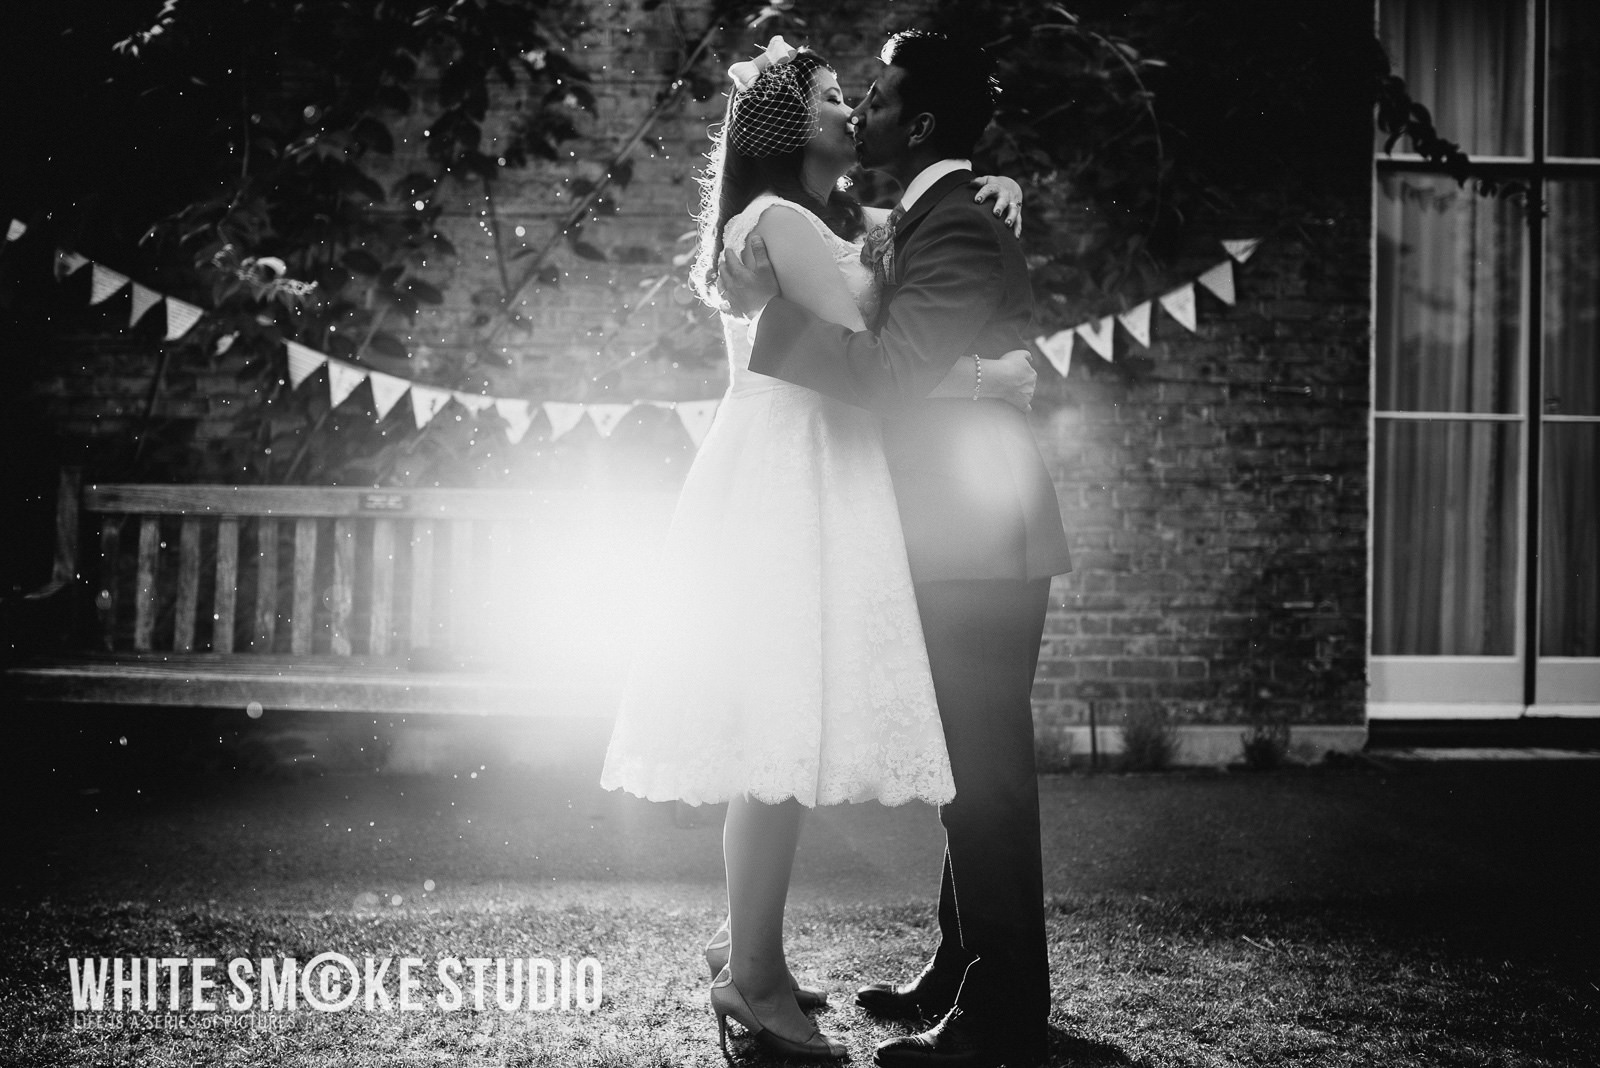 harriet_sanjeev_kew_garden_168_cambridge_cottage_wedding